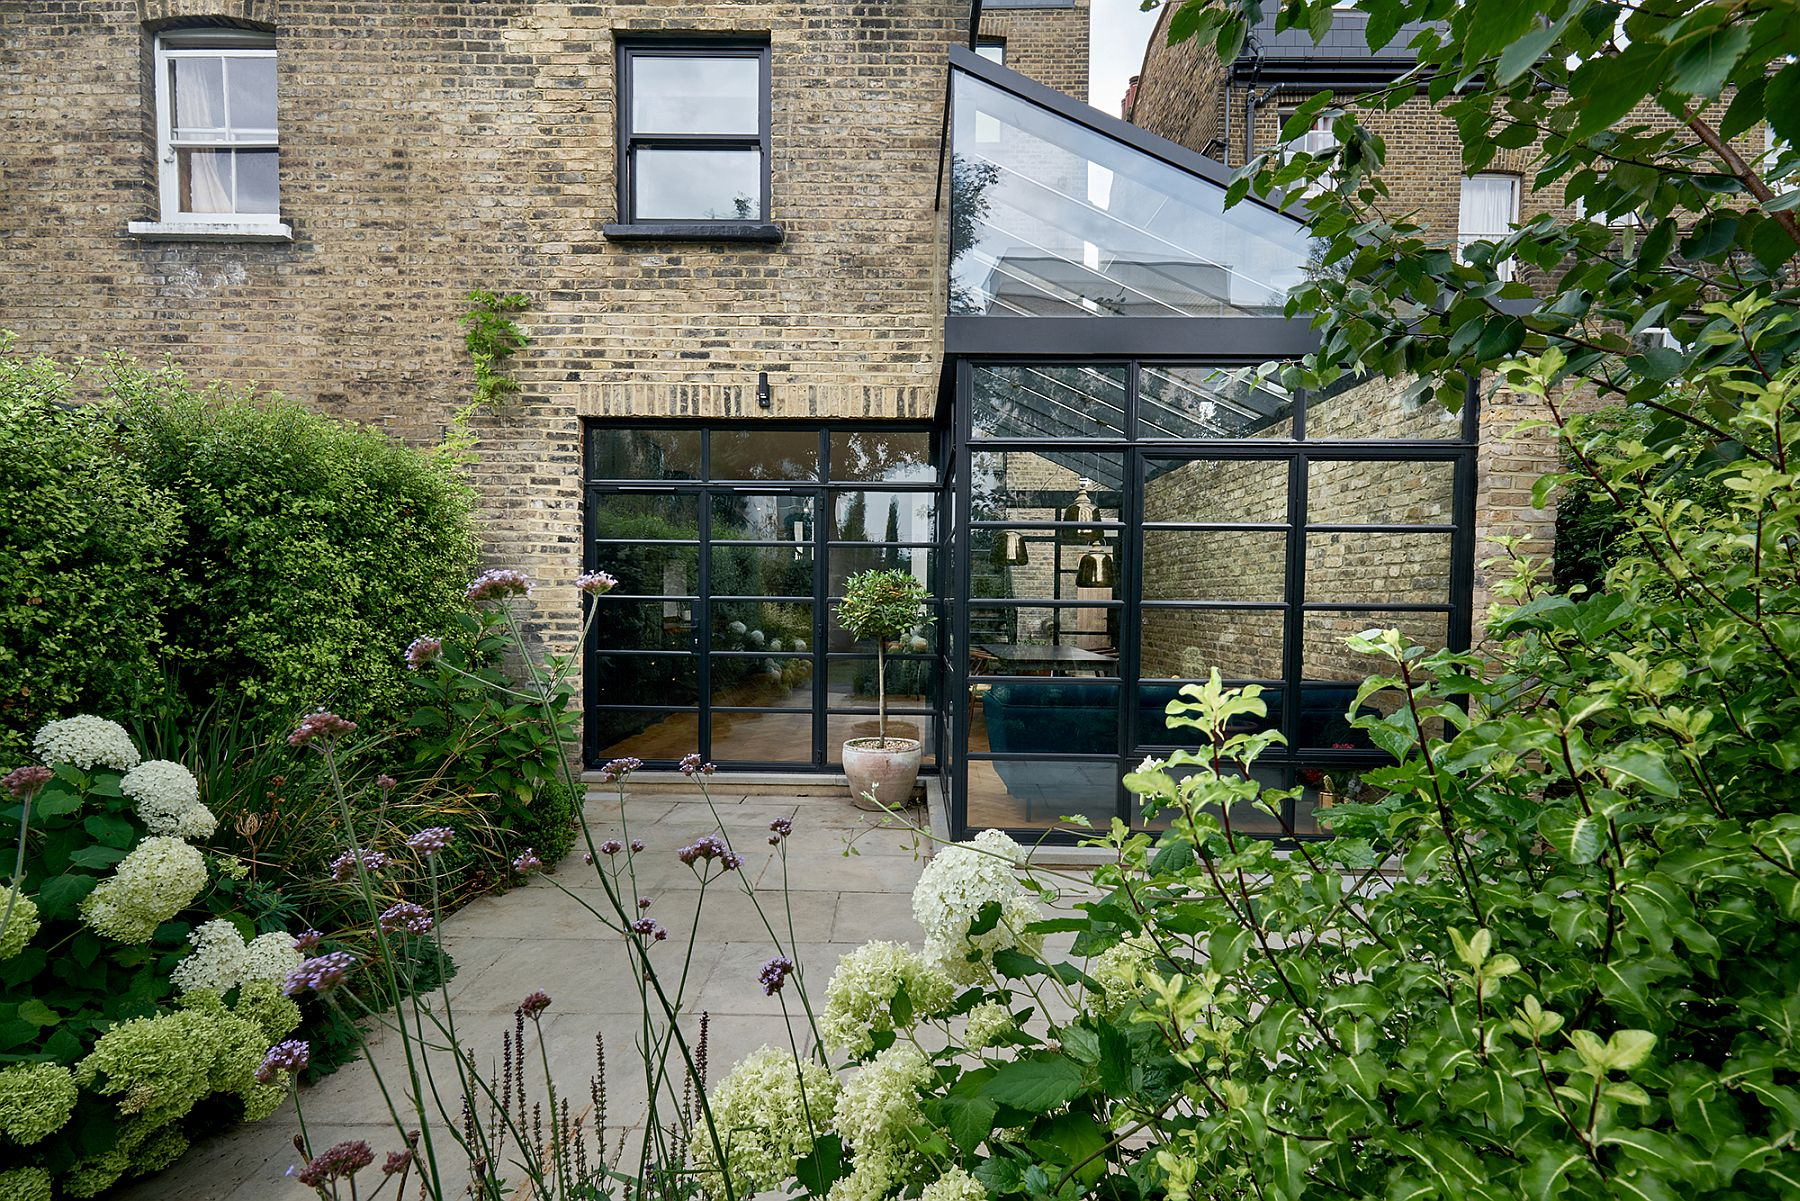 Modern extension using crittall windows refreshes victorian terrace house - Garden design terraced house ...